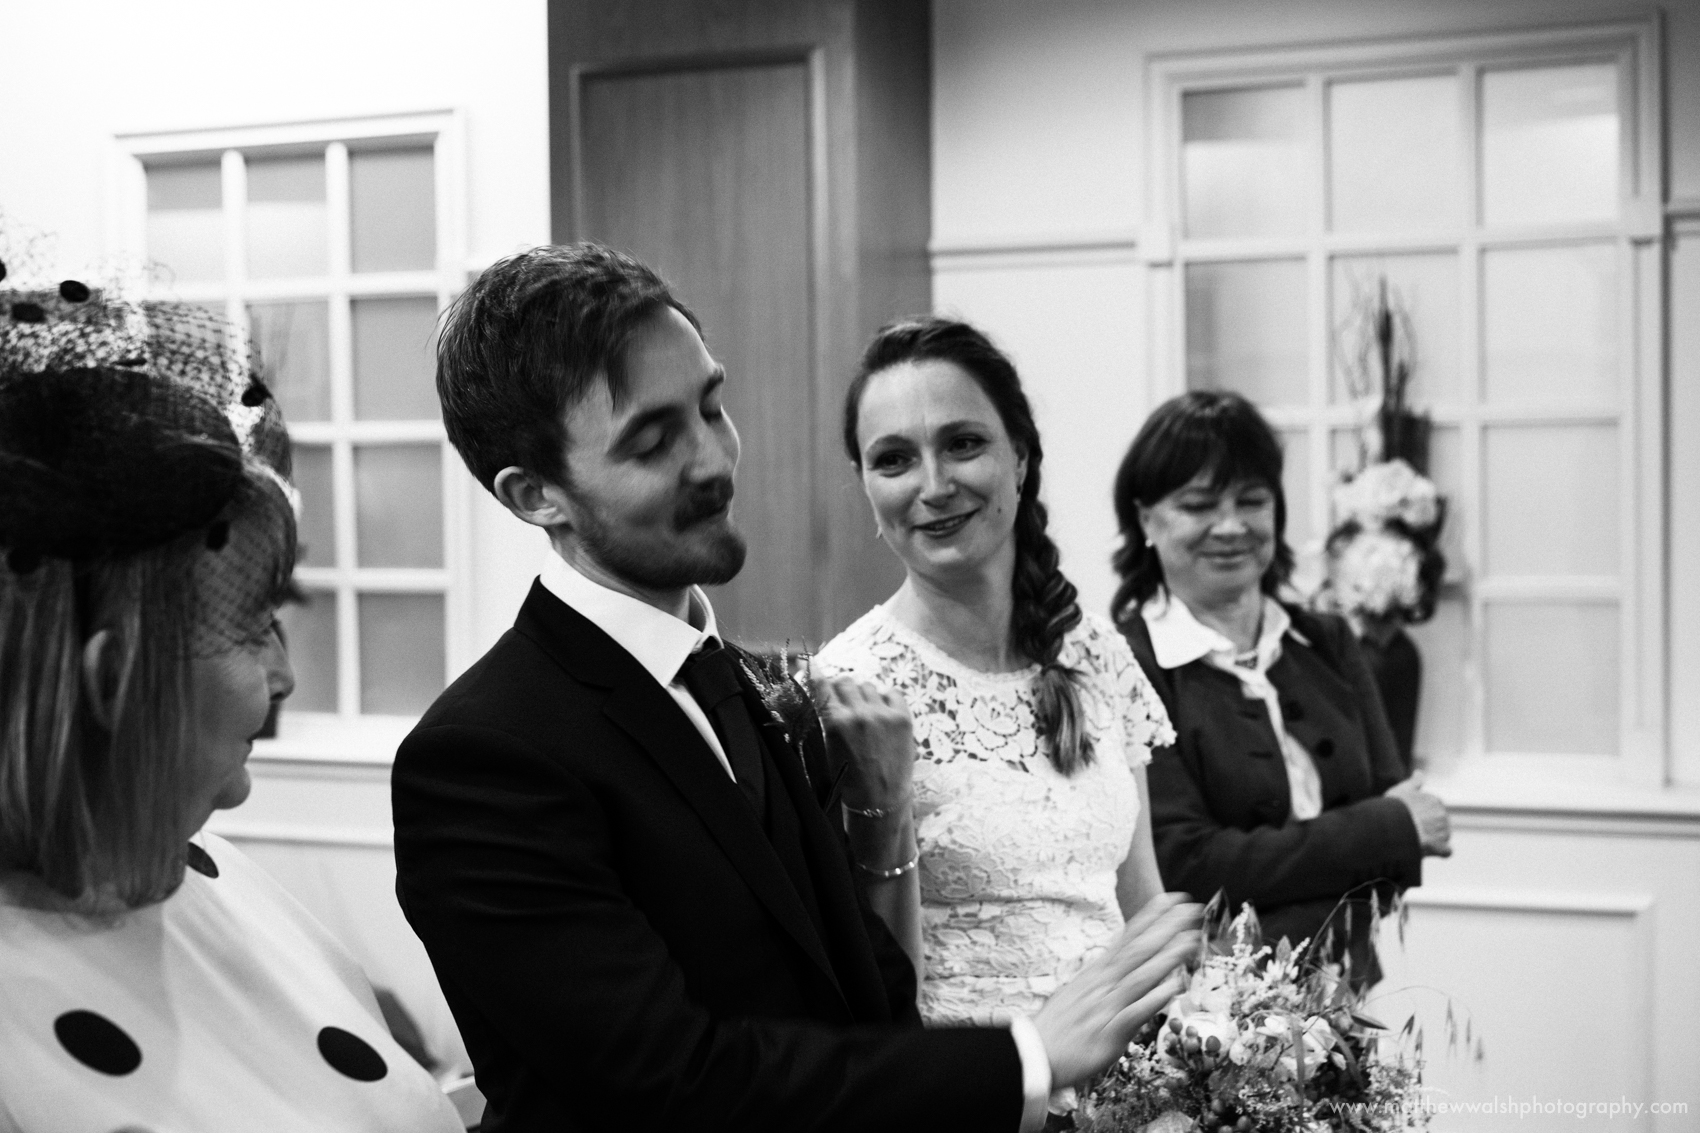 A black and white photograph of the bride and groom sharing their wedding vows